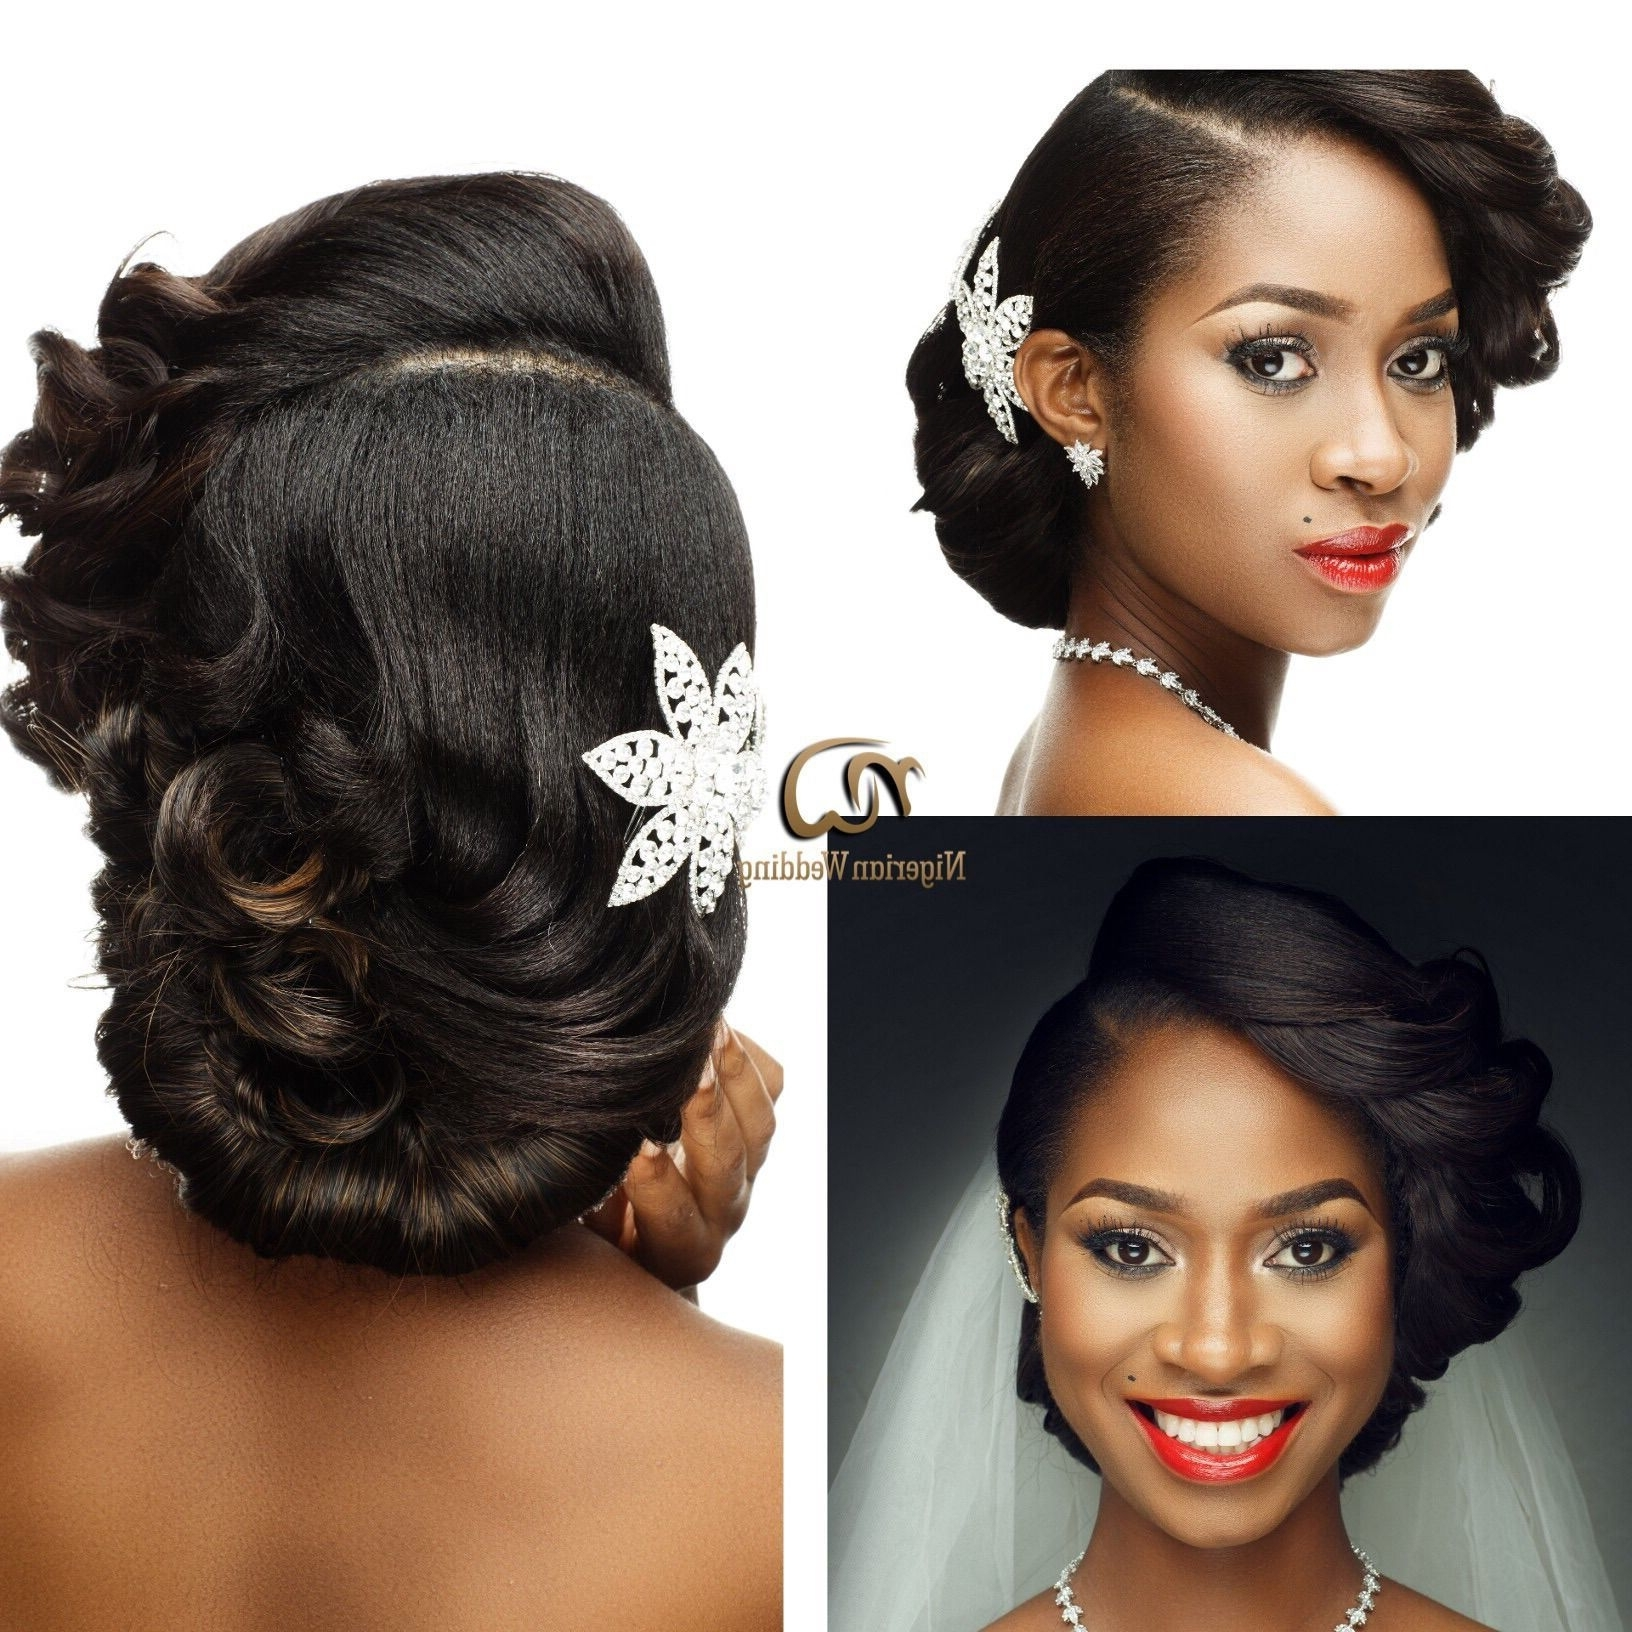 Famous Nigerian Wedding Hairstyles For Bridesmaids For Presents Gorgeous Bridal Hair & Makeup Inspirationunique Berry (View 4 of 15)